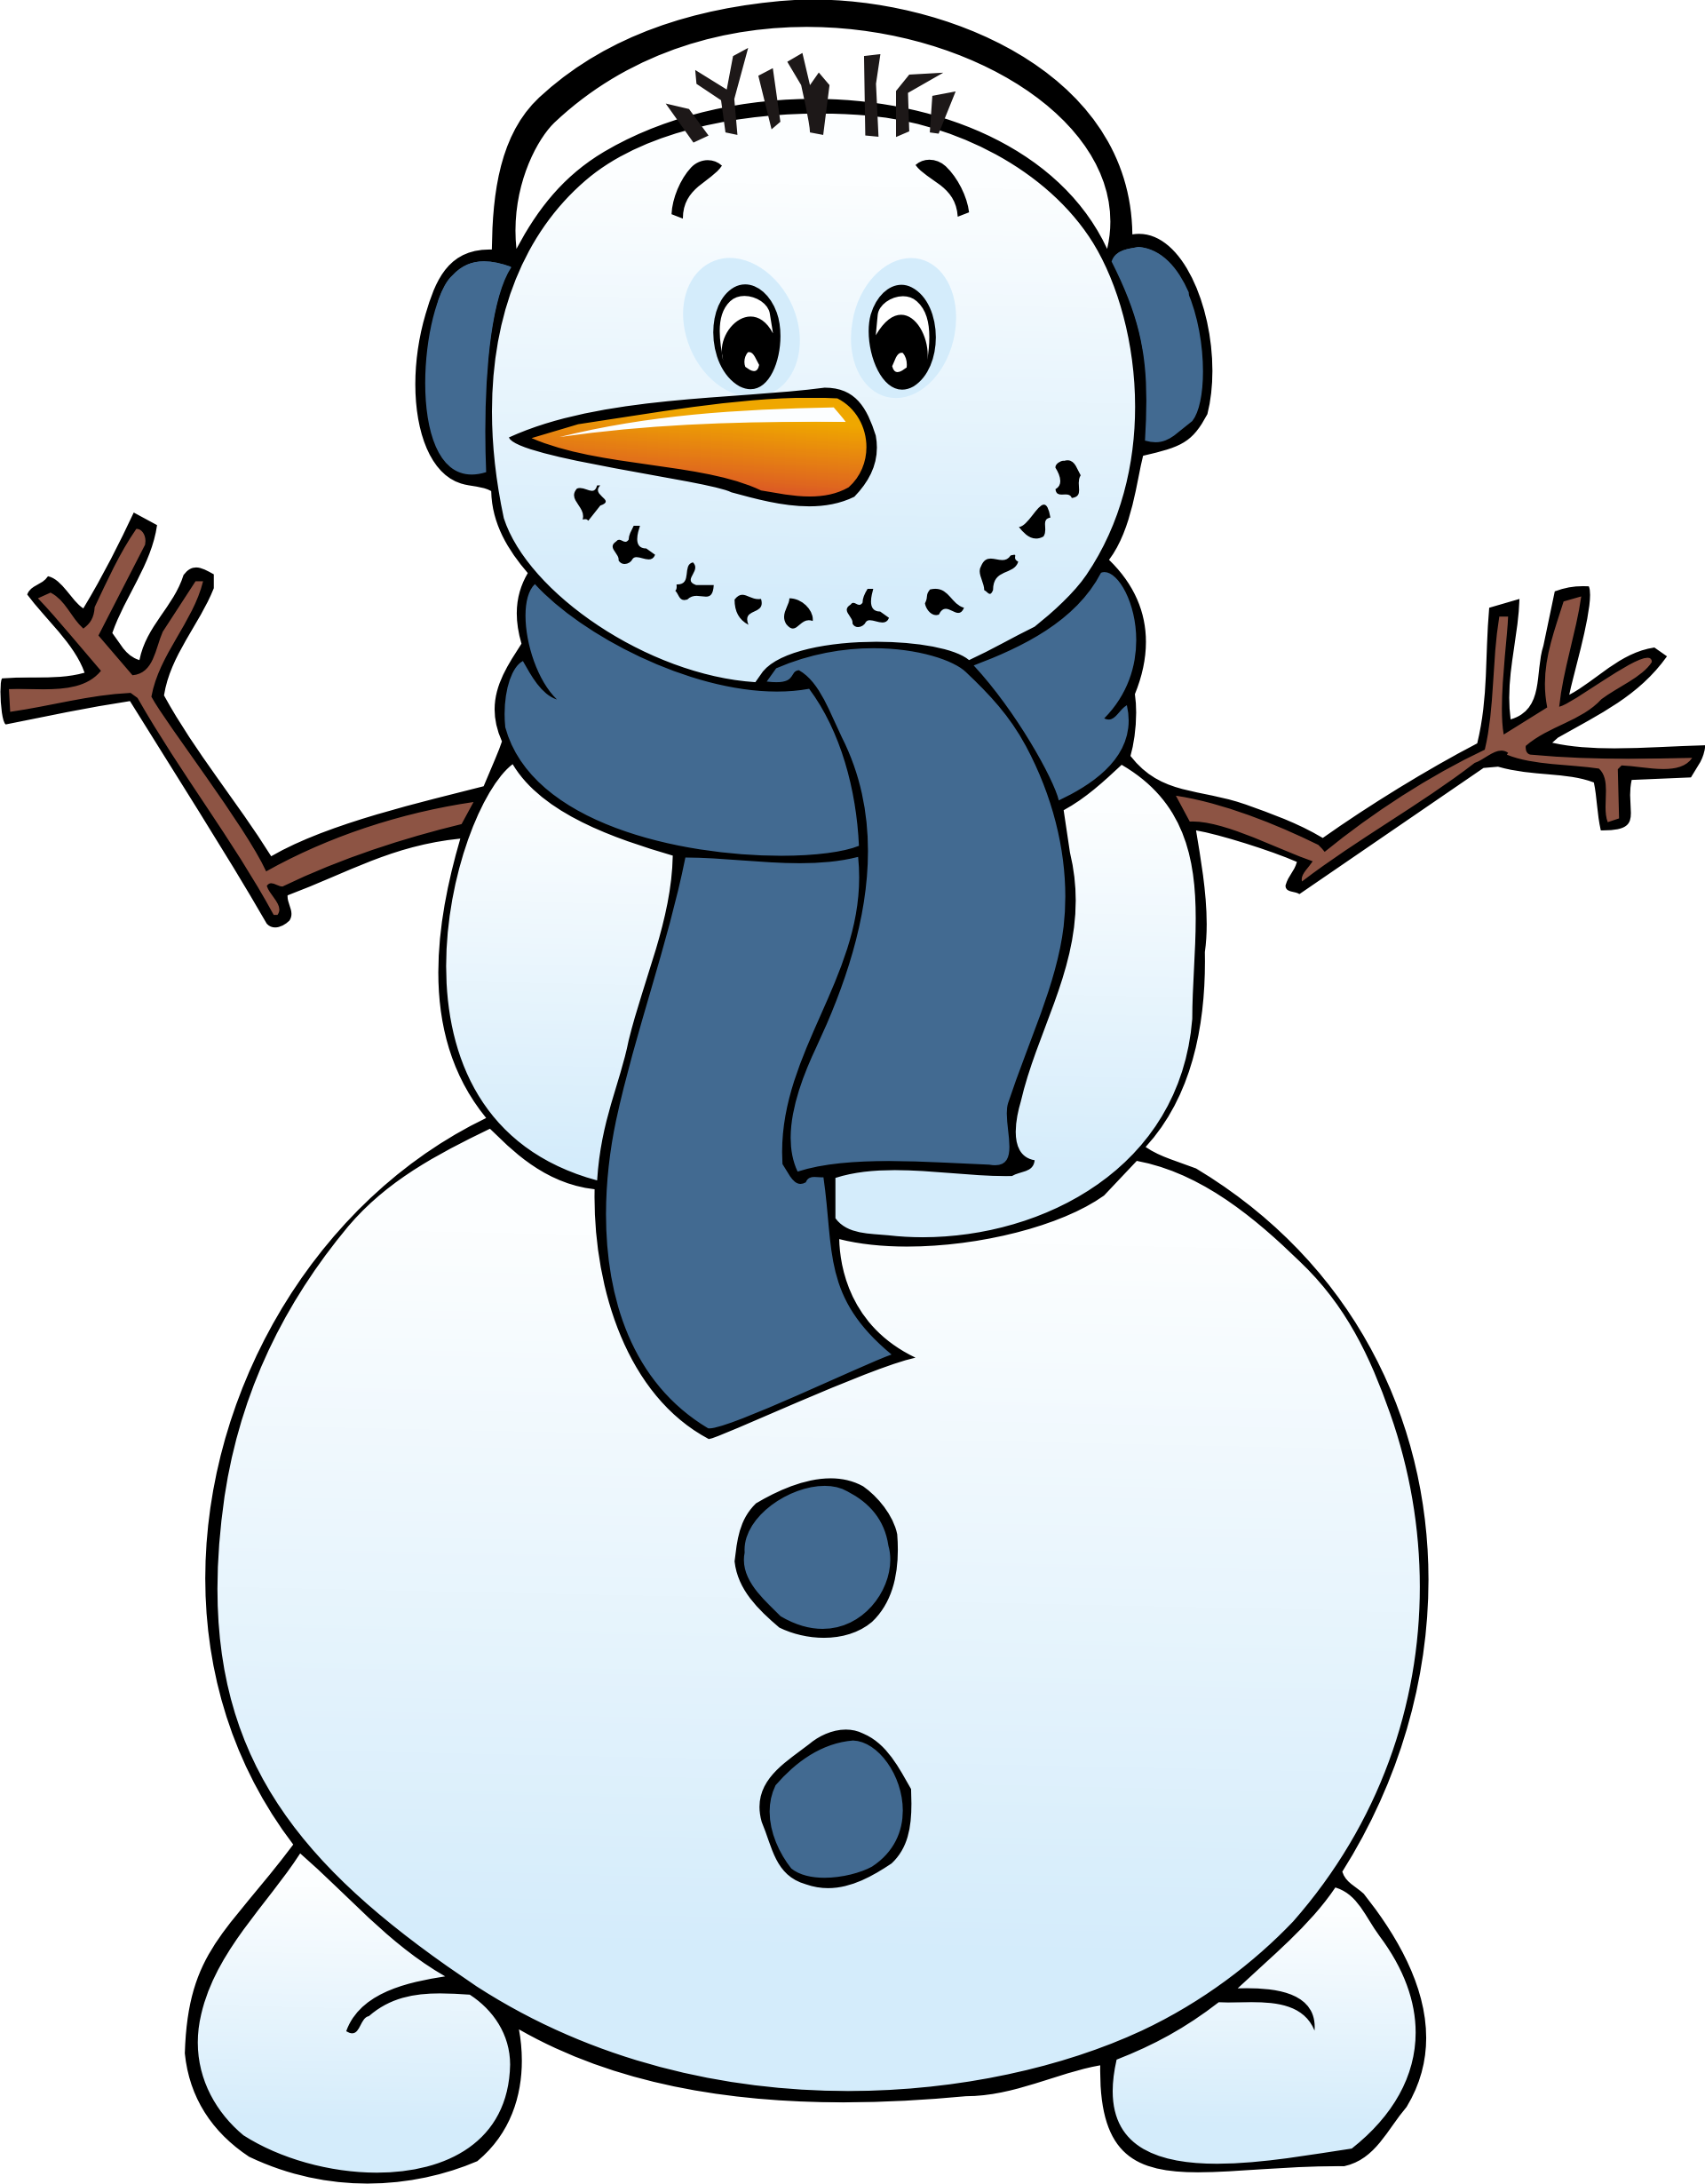 Cute snowman clip art. Grinch clipart arm graphic royalty free stock